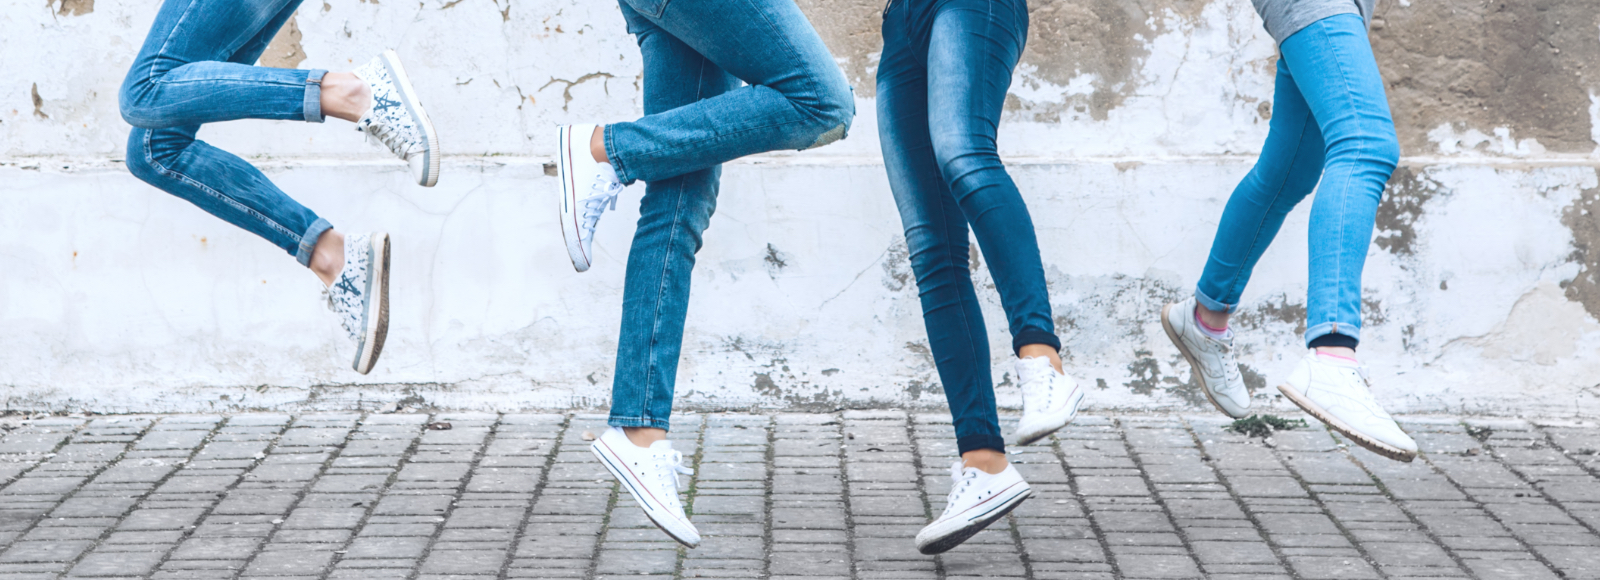 Four people mid-jump in blue jeans and white shoes kept clean with Sof Sole® clean products.